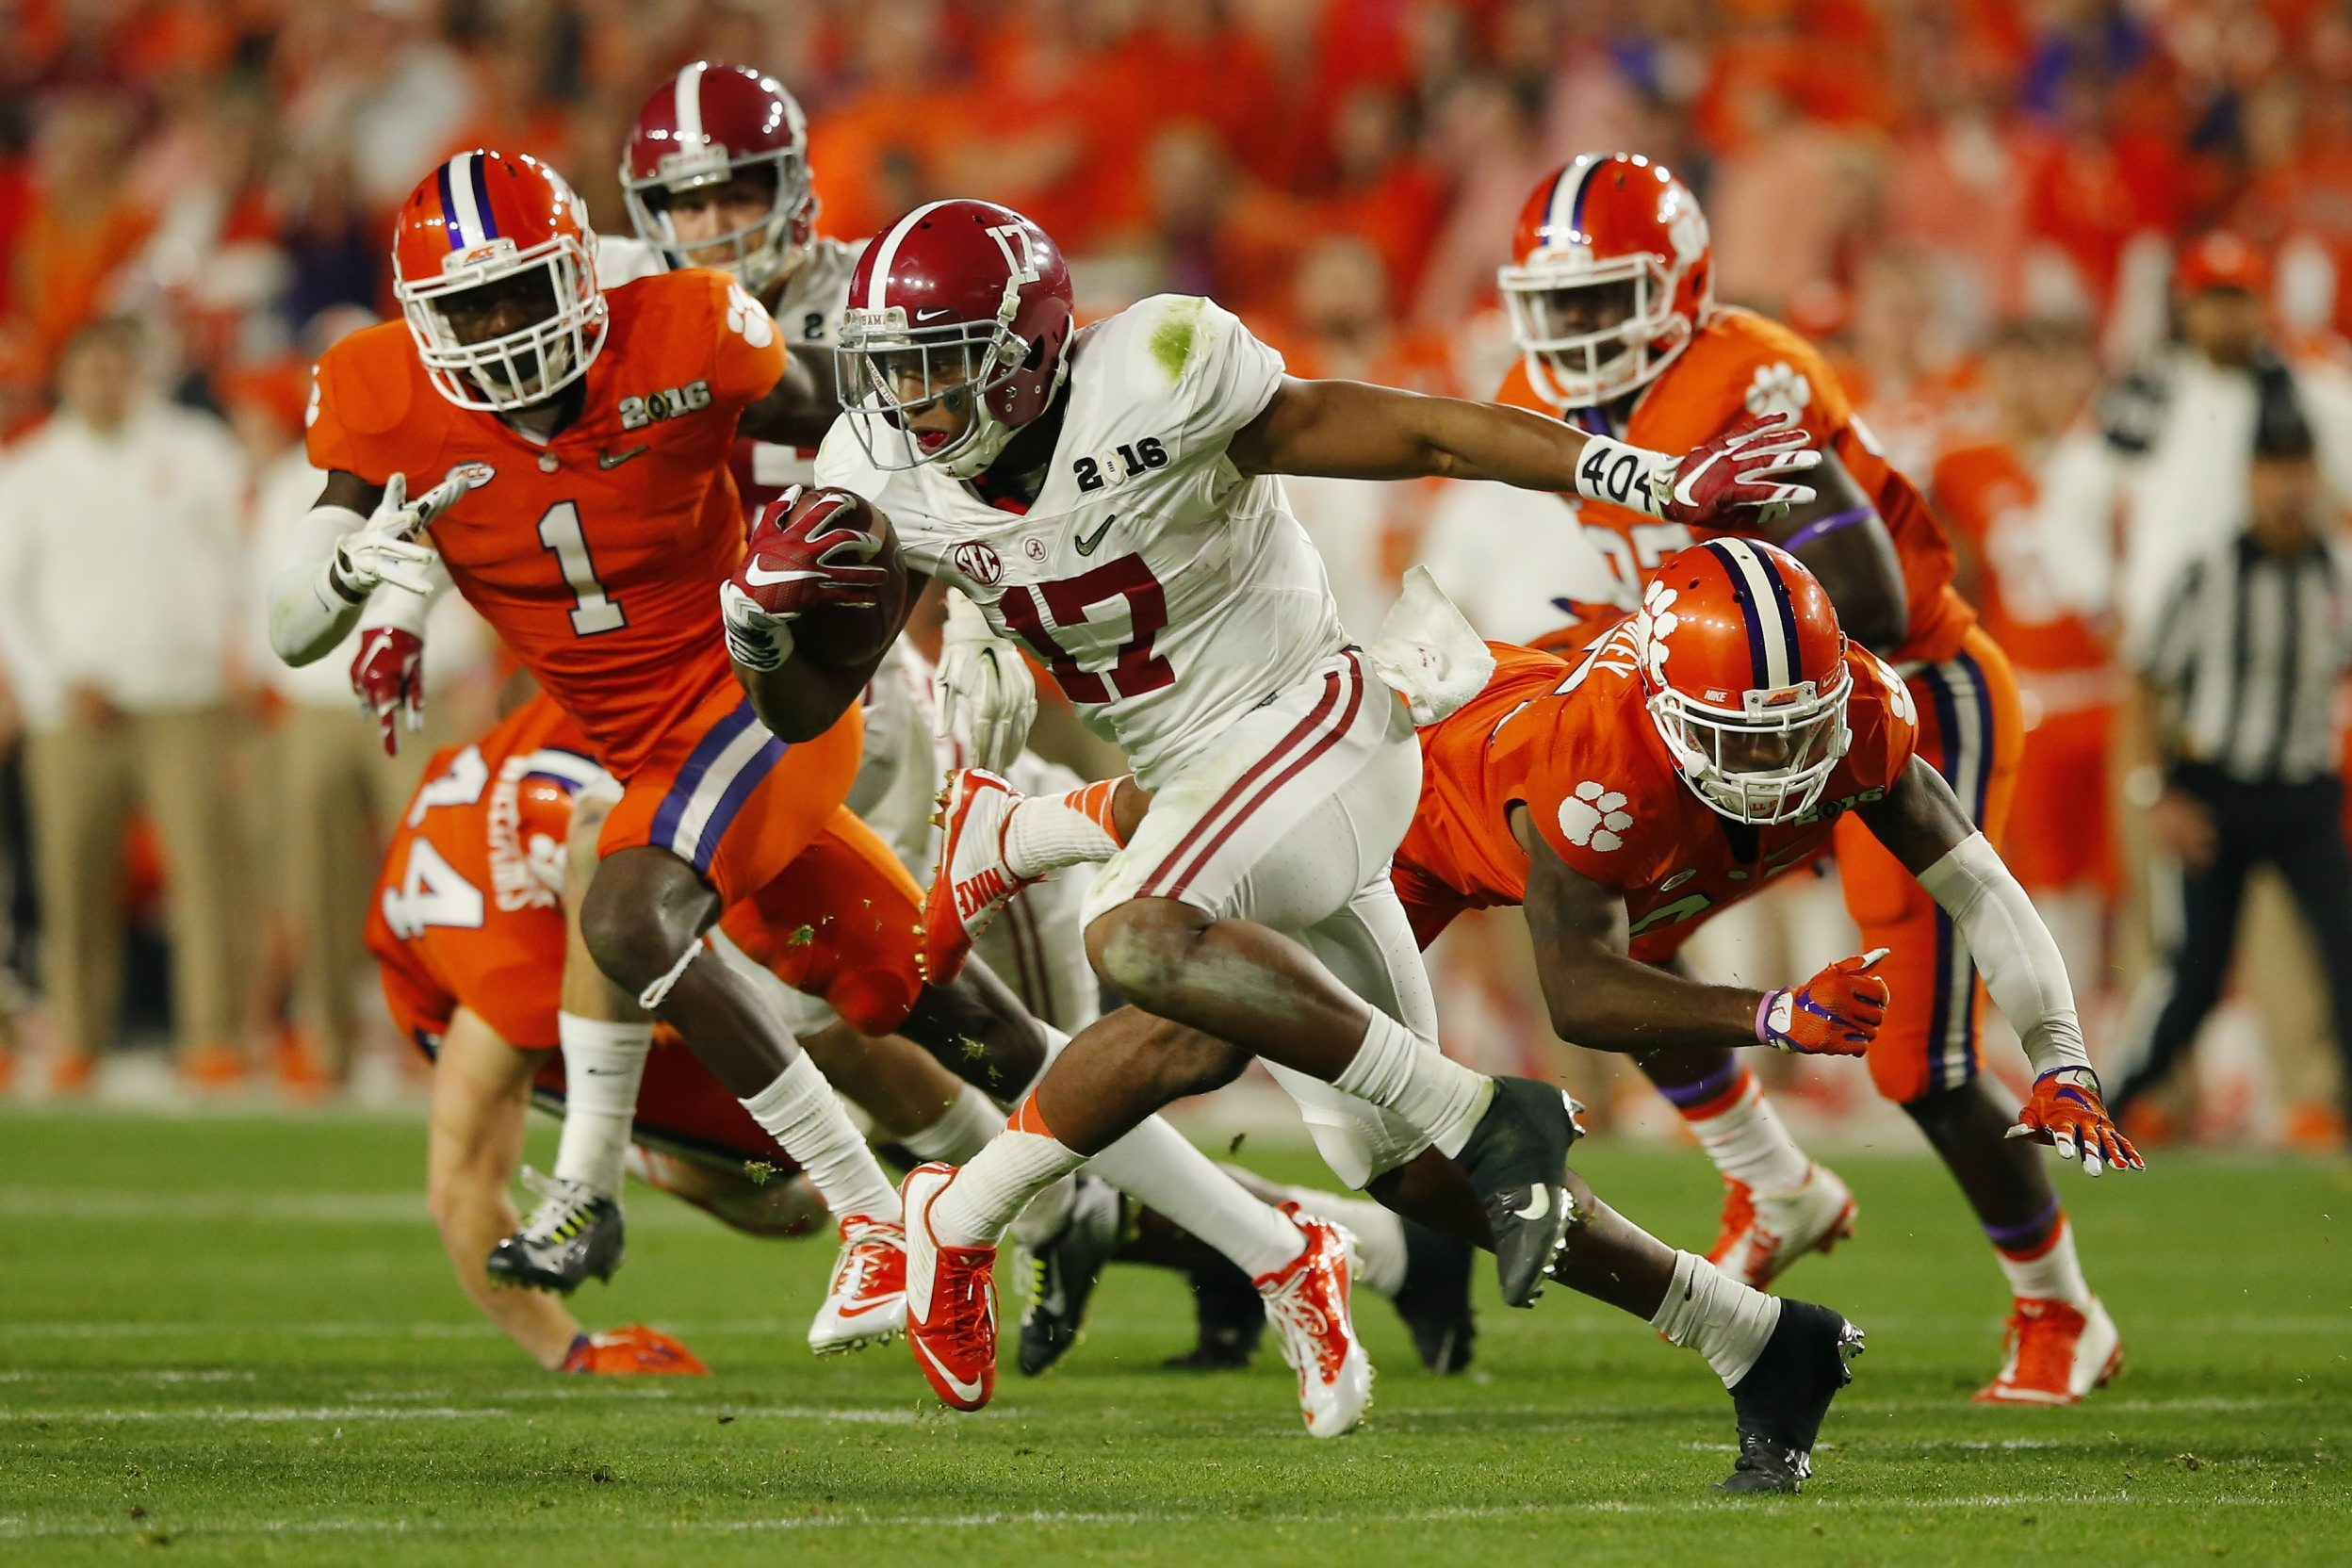 Kenyan Drake (17) of Alabama returned a punt 95 yards for touchdown in the College Football National Championship Game.